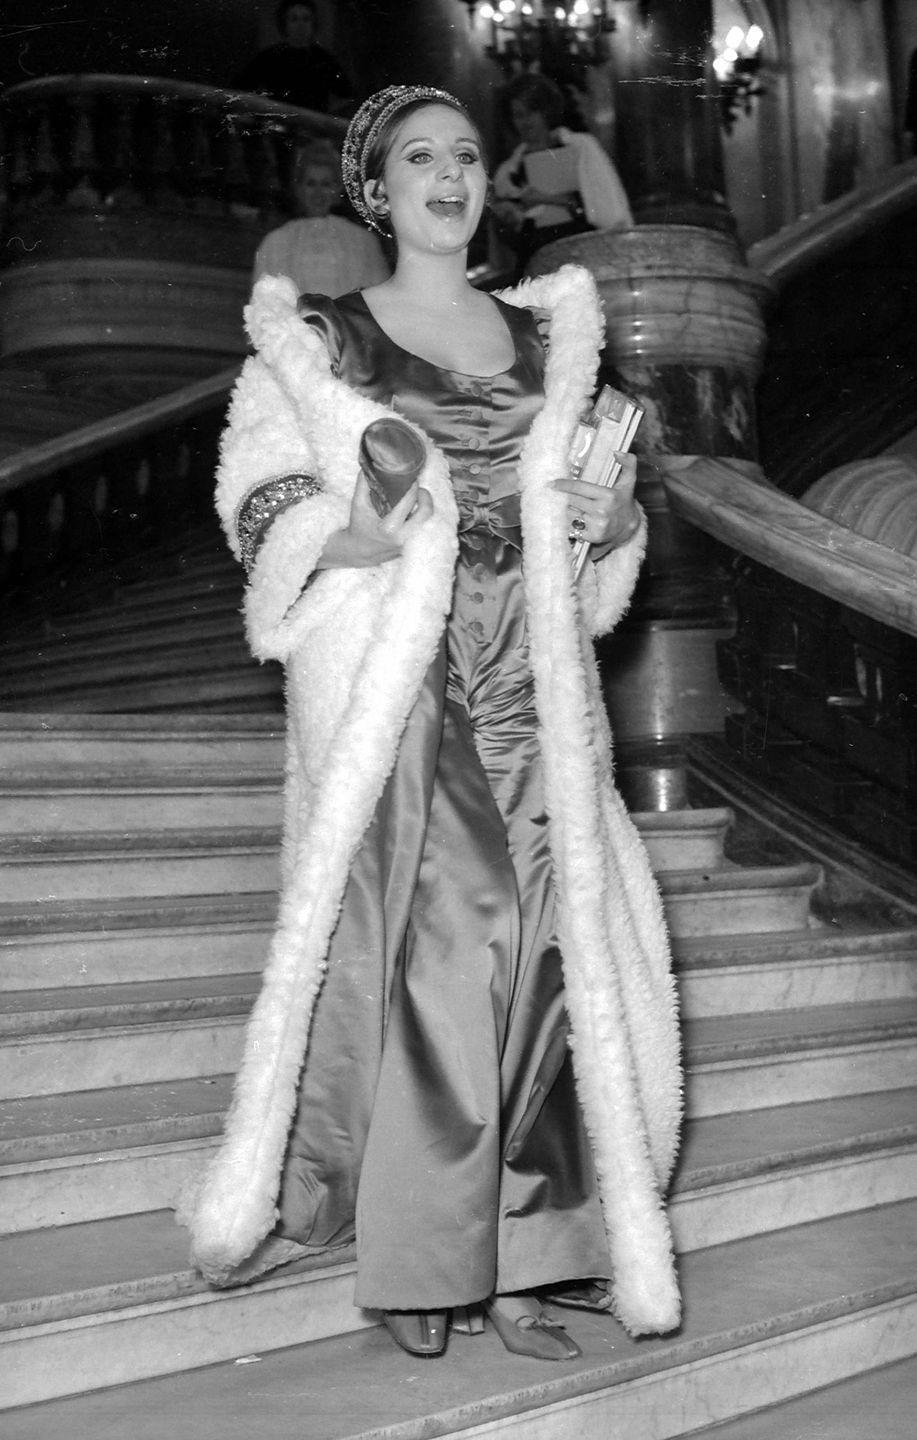 <p>Barbra Streisand looks beautiful in an evening gown and fur coat as she makes her way down a staircase at the Palais Garnier opera house.</p>